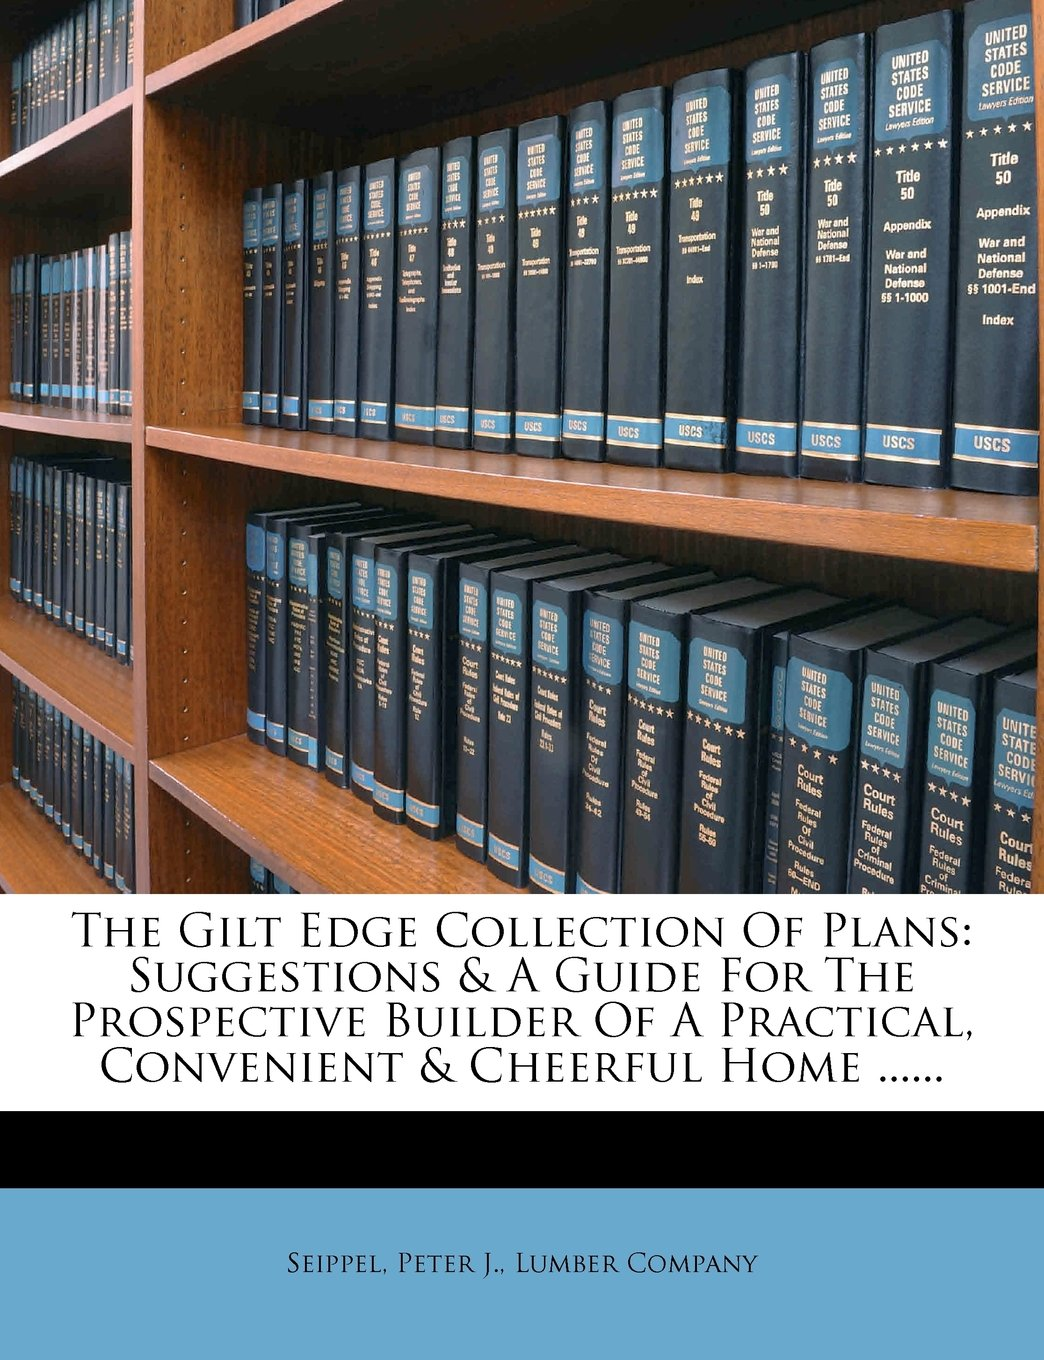 Download The Gilt Edge Collection Of Plans: Suggestions & A Guide For The Prospective Builder Of A Practical, Convenient & Cheerful Home ...... PDF